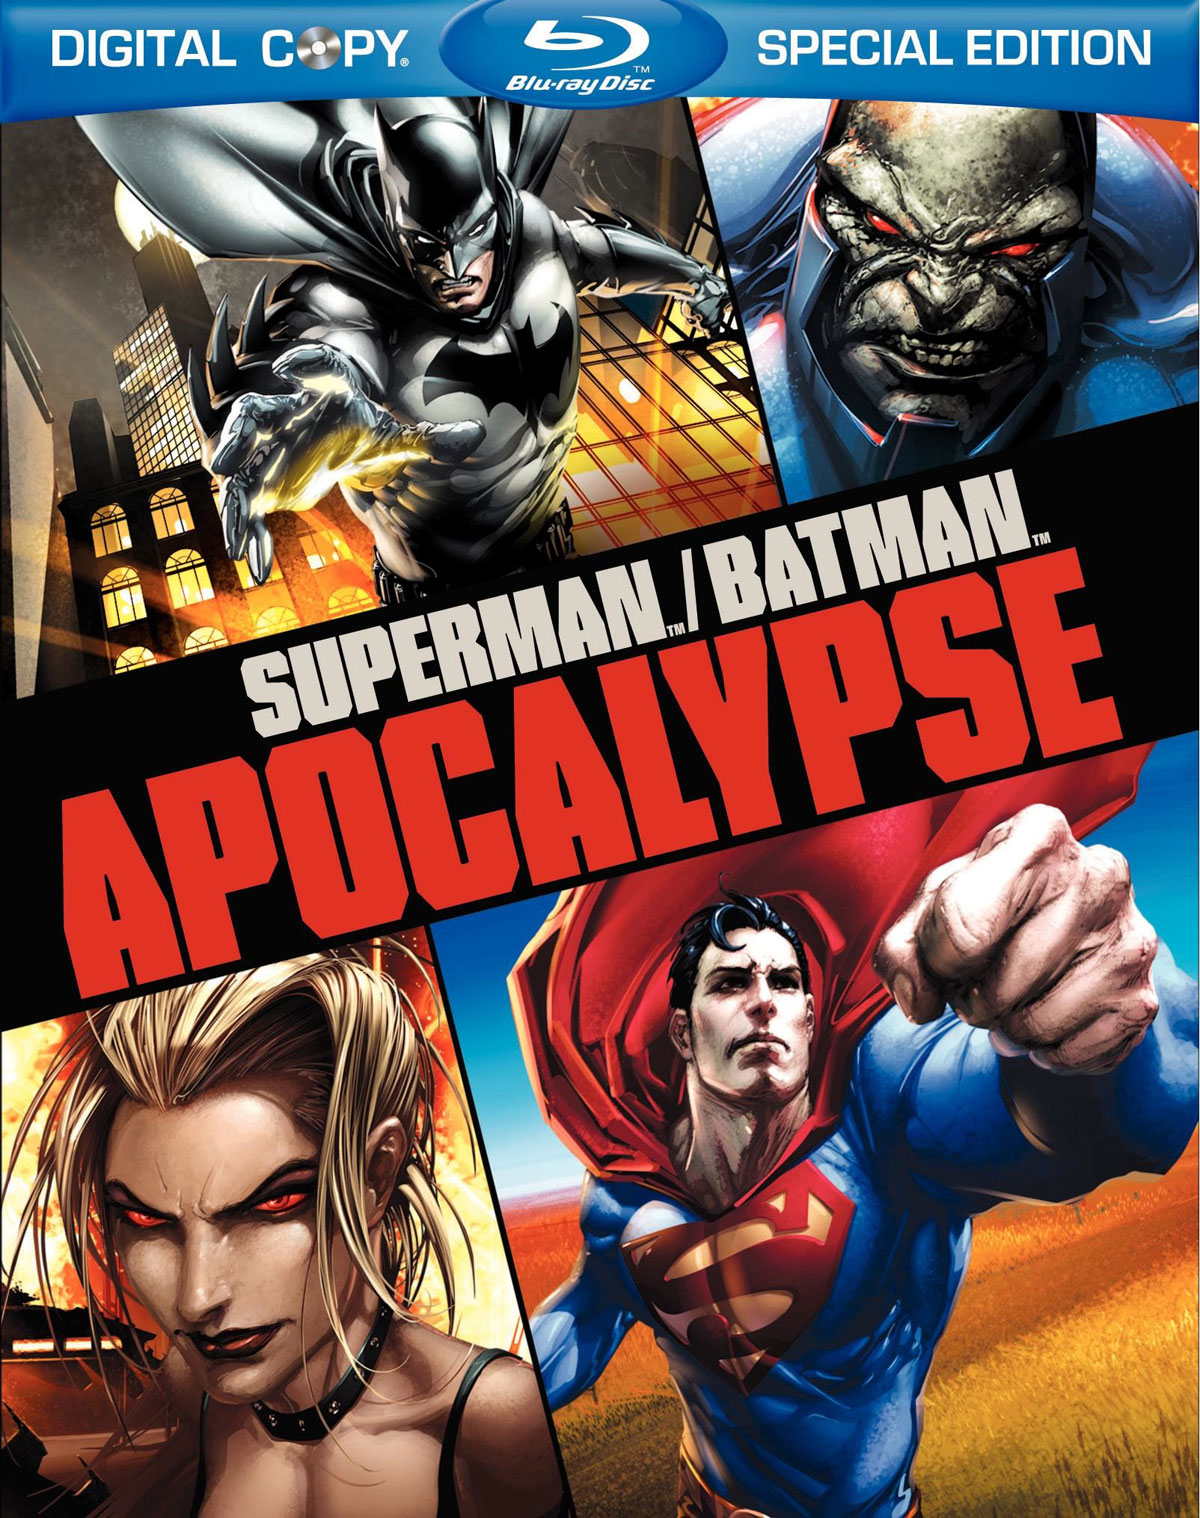 Superman Batman: Apocalypse